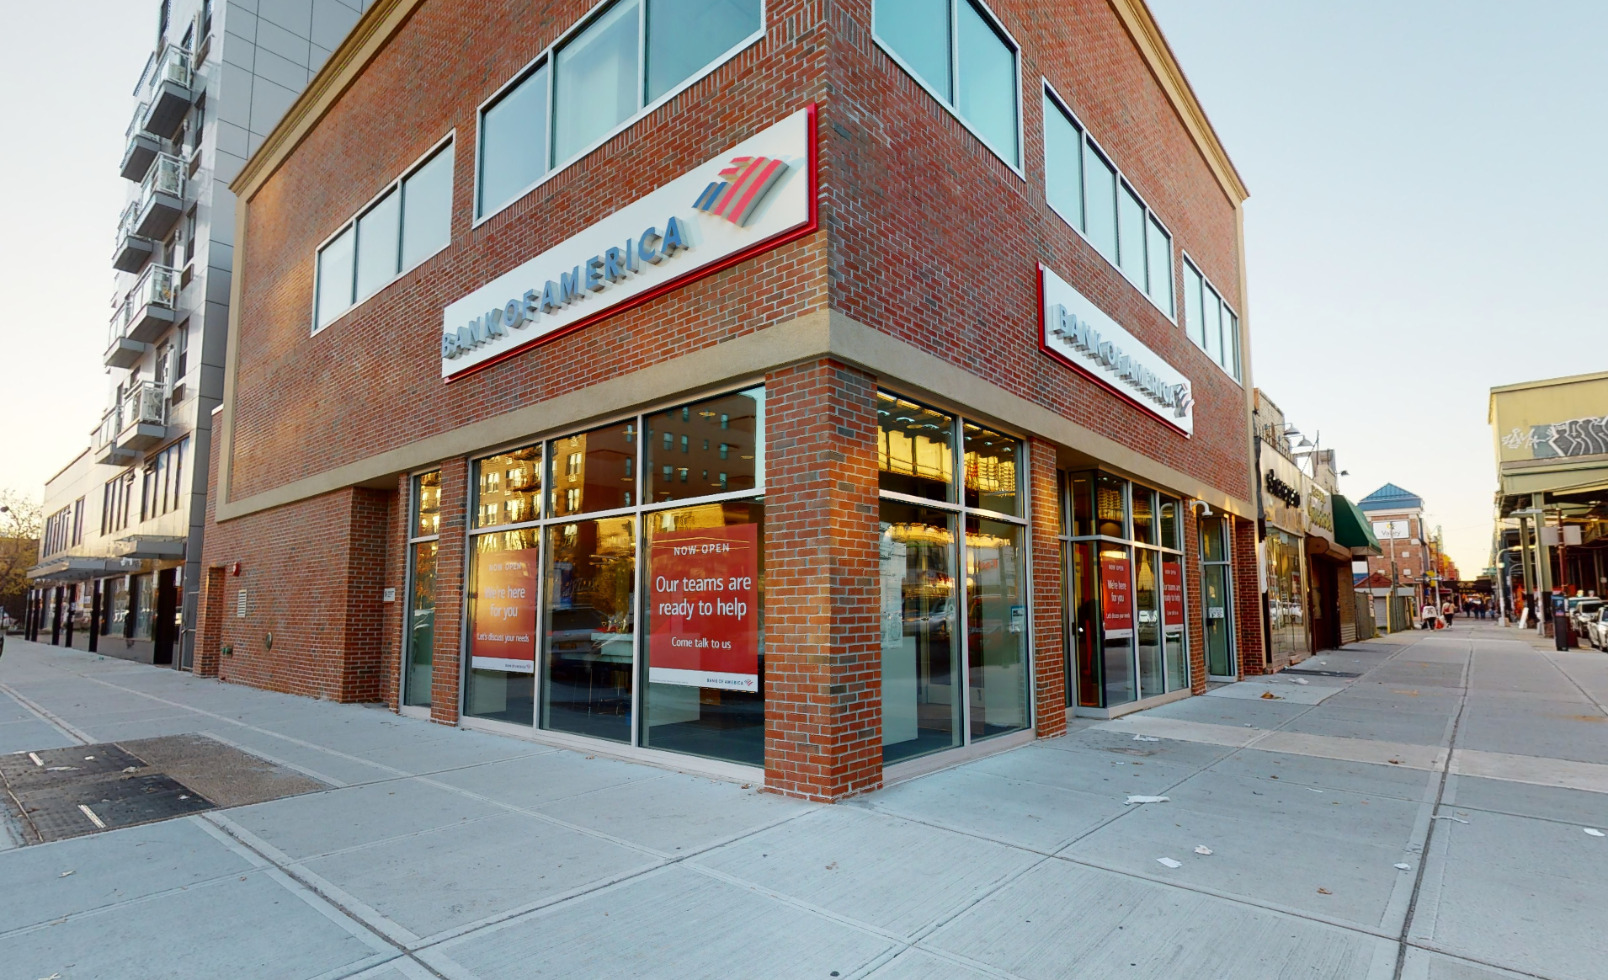 Bank of America financial center with walk-up ATM | 2076 86th St, Brooklyn, NY 11214